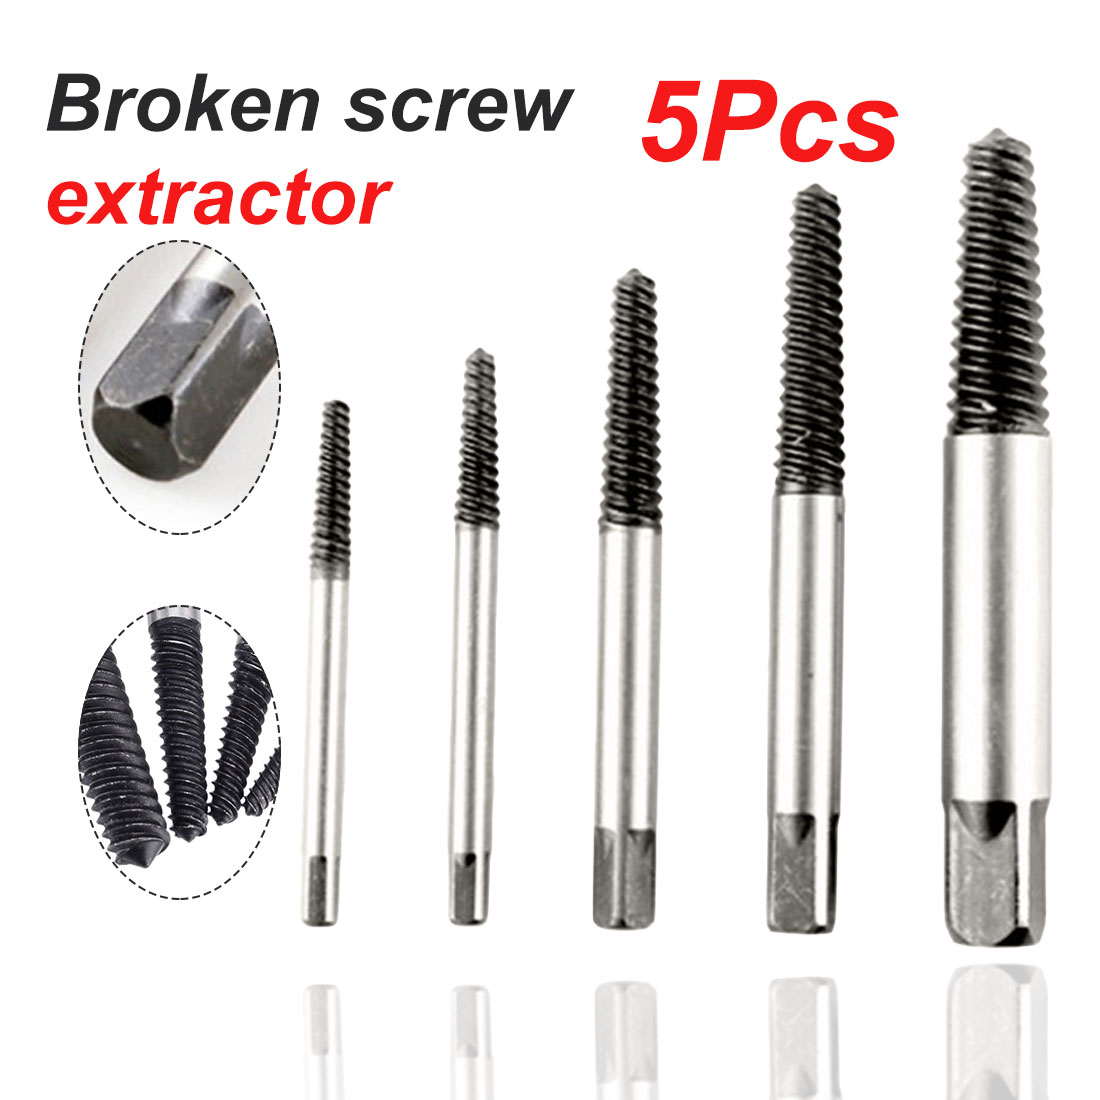 5Pcs/set Carbon Steel Screw Extractor Center Drill Bits Guide Set Broken Damaged Bolt Remover Removal Speed Easy Out Set